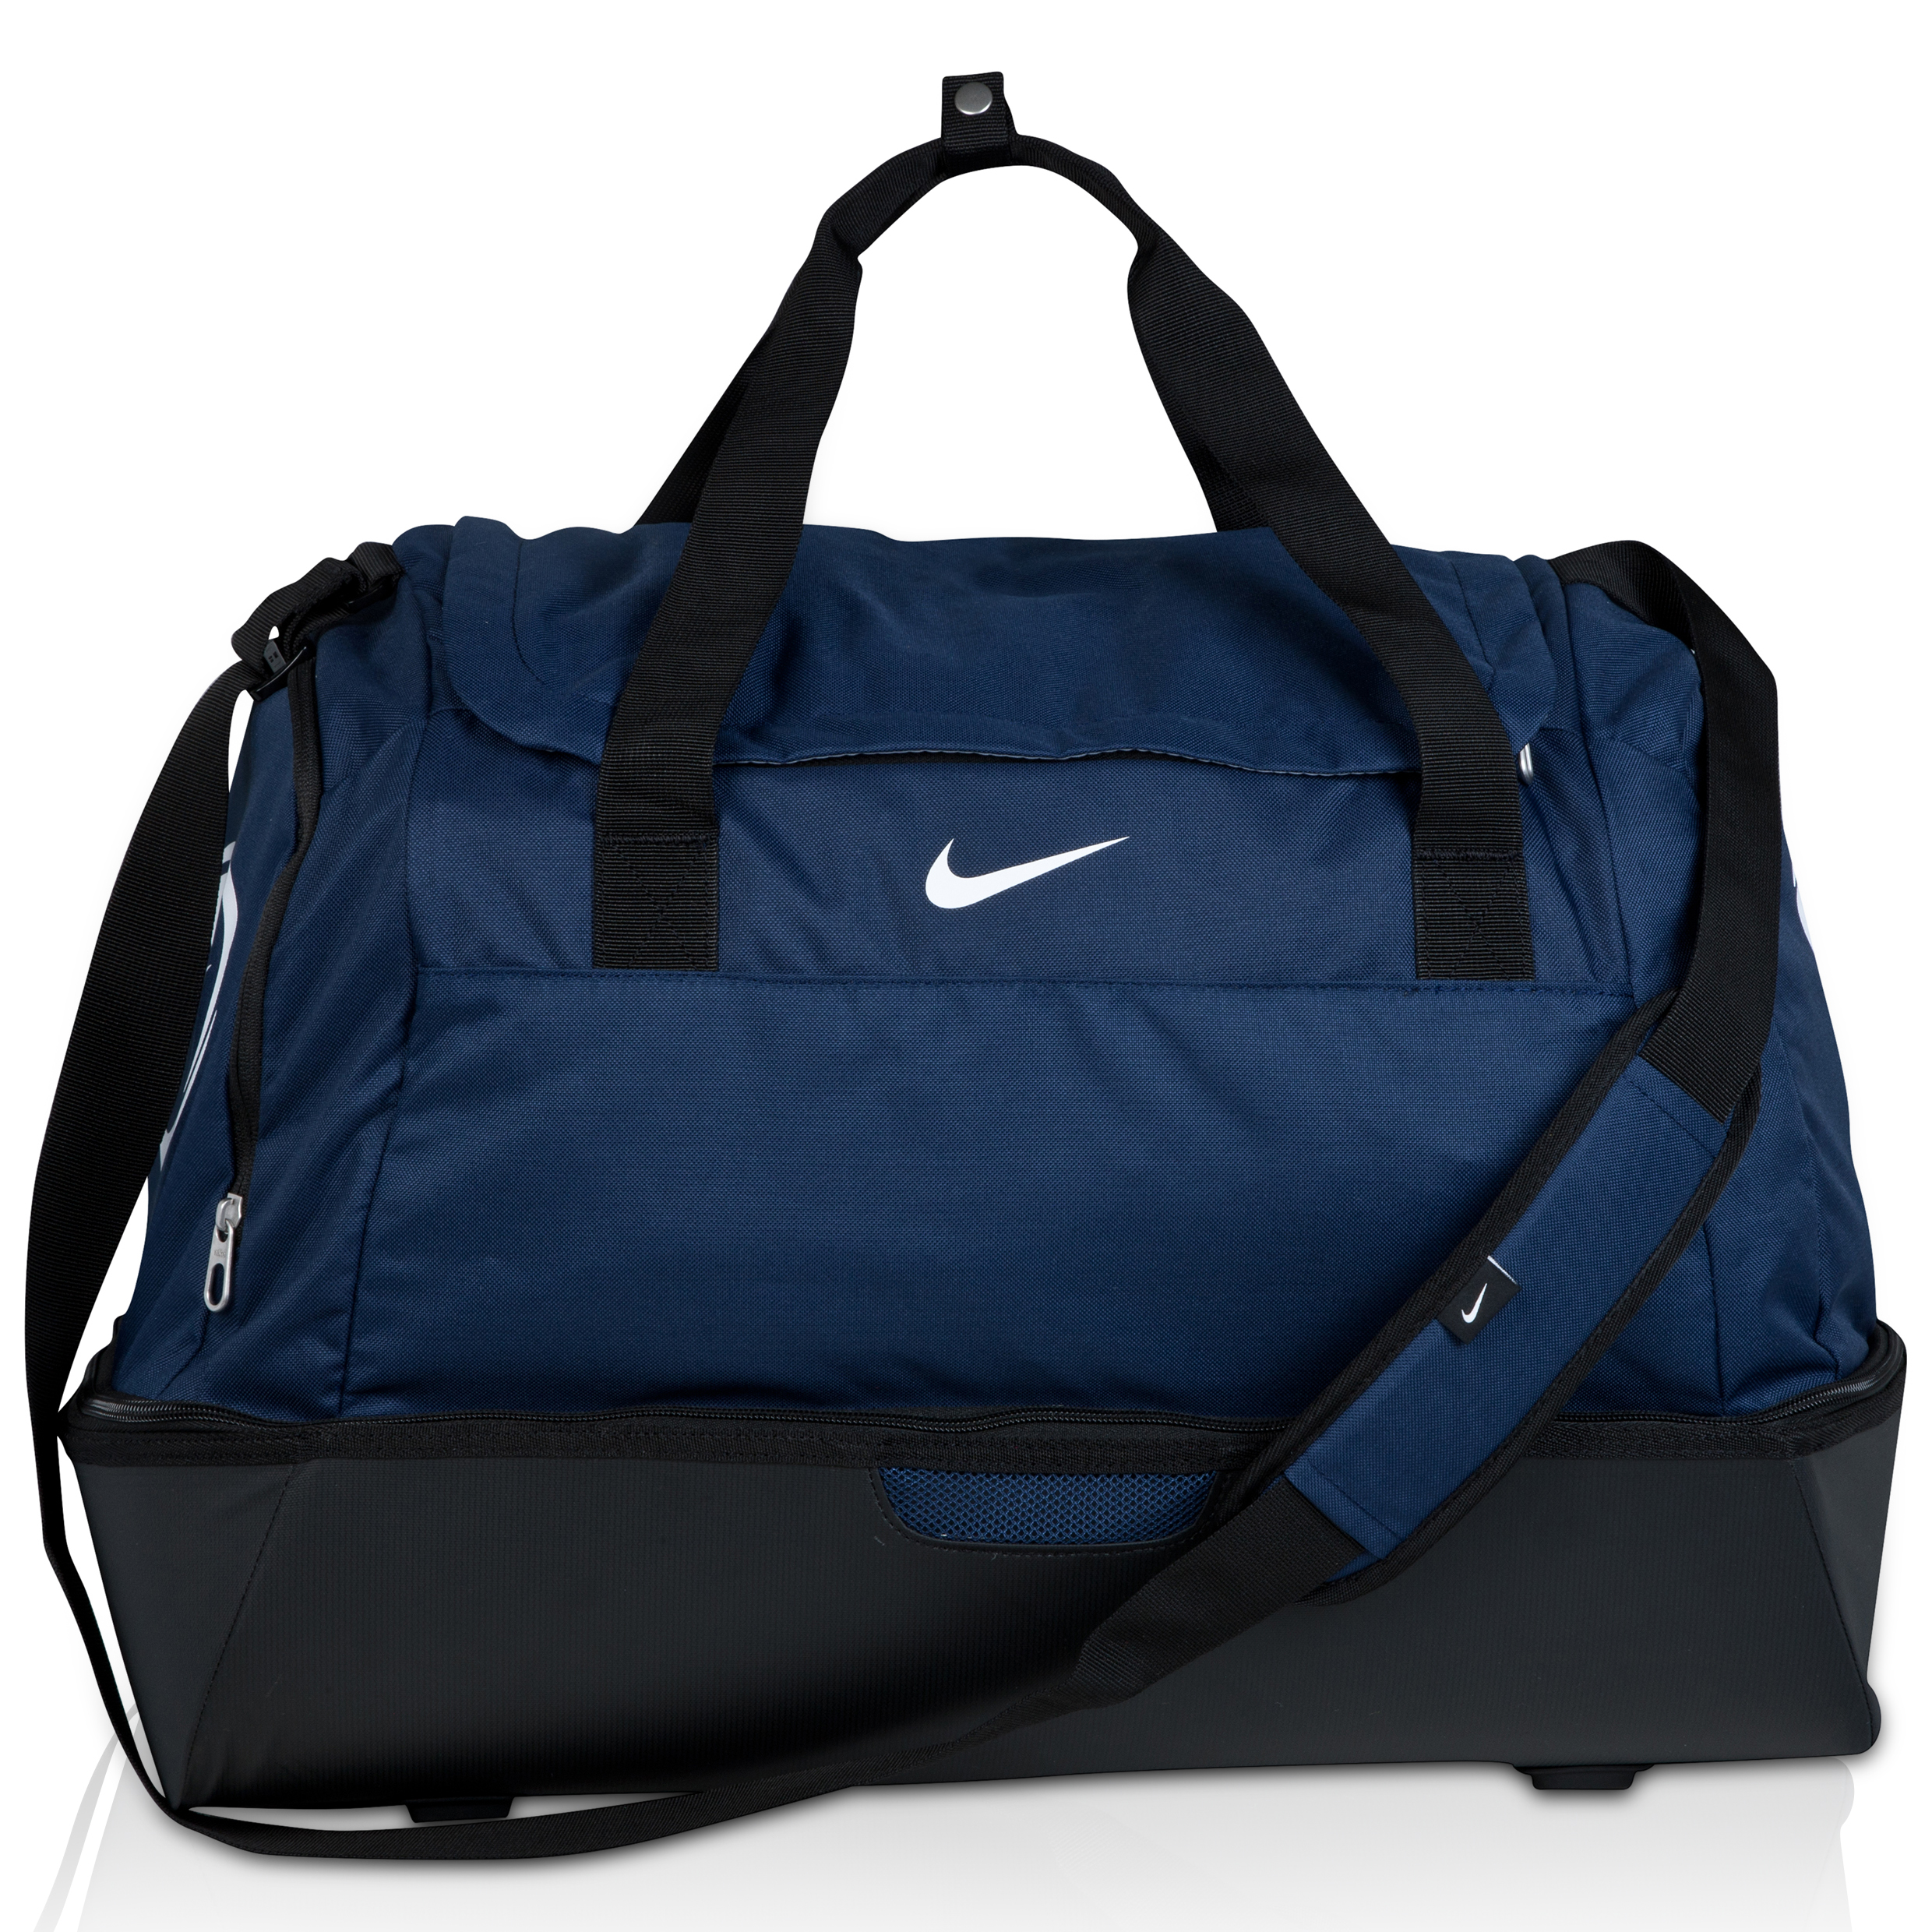 Nike Club Team XL Hardcase Bag Navy